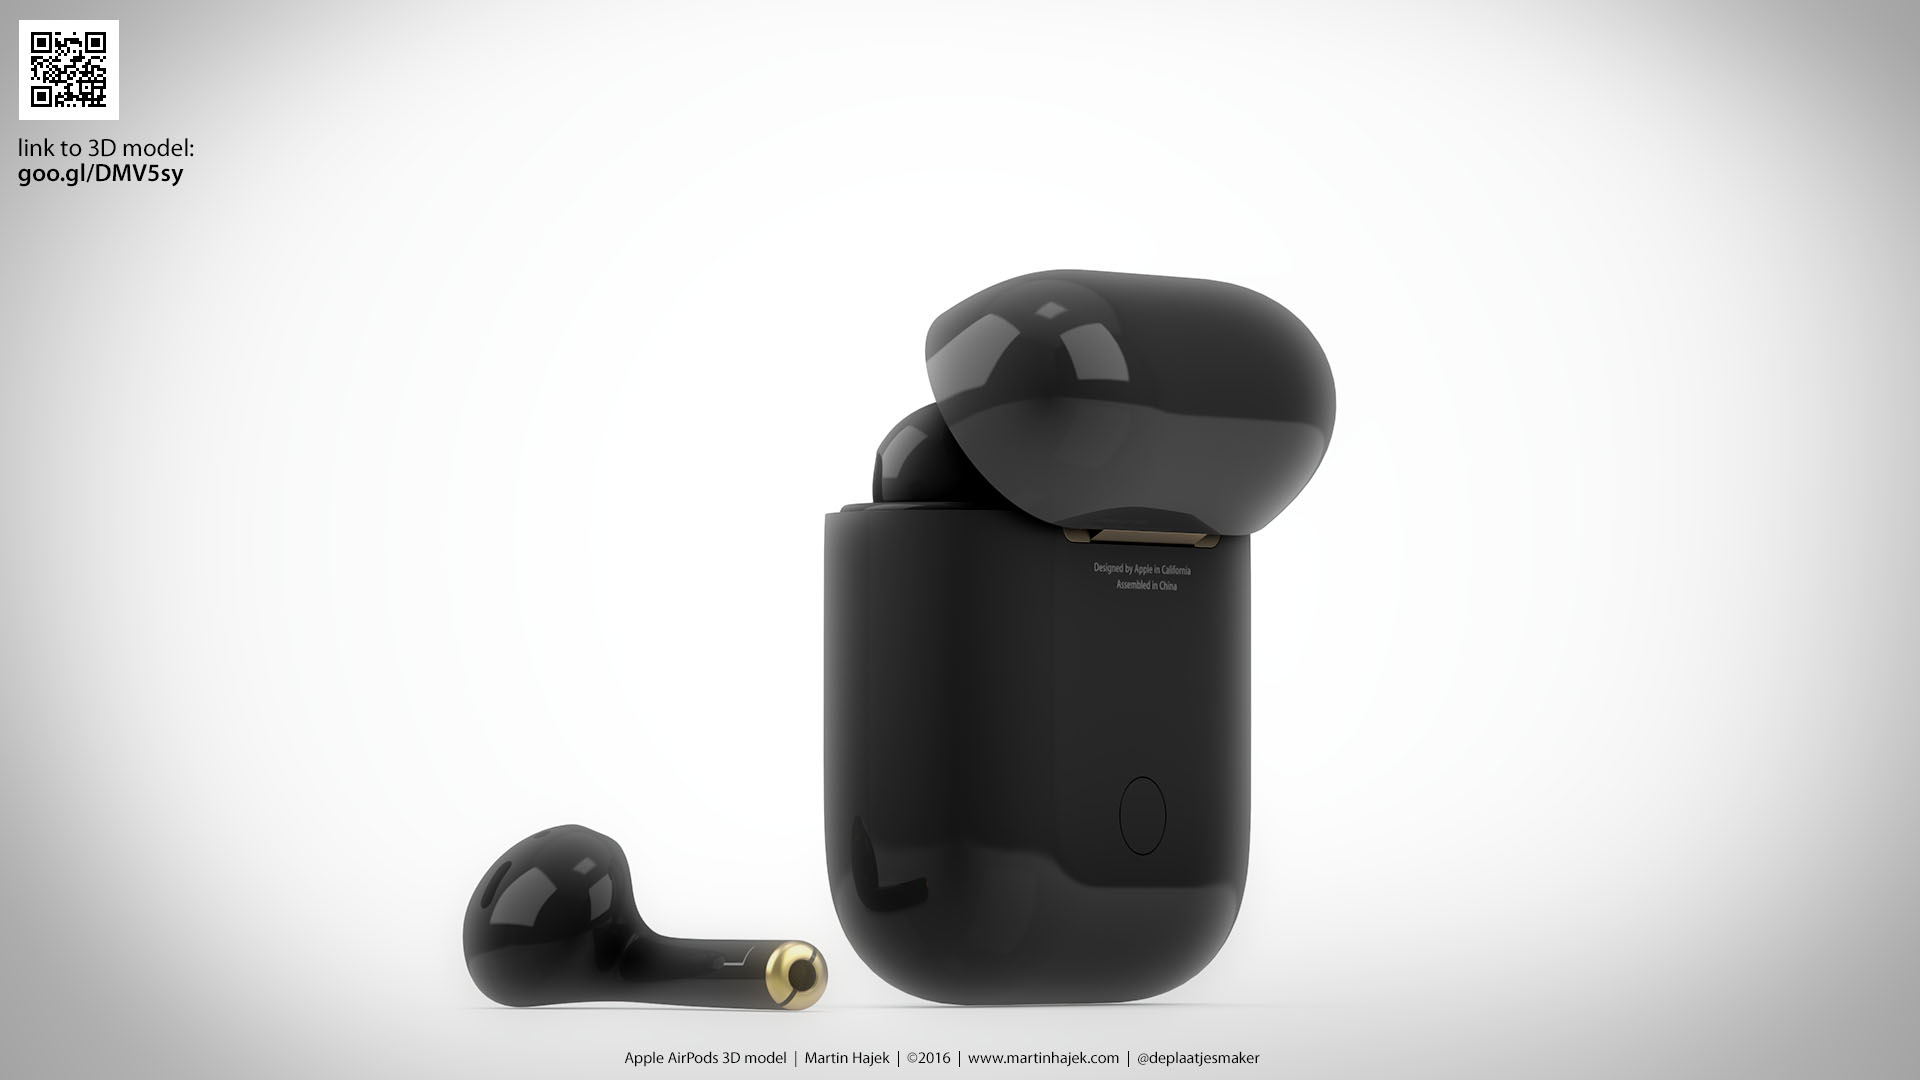 how about jet black airpods?